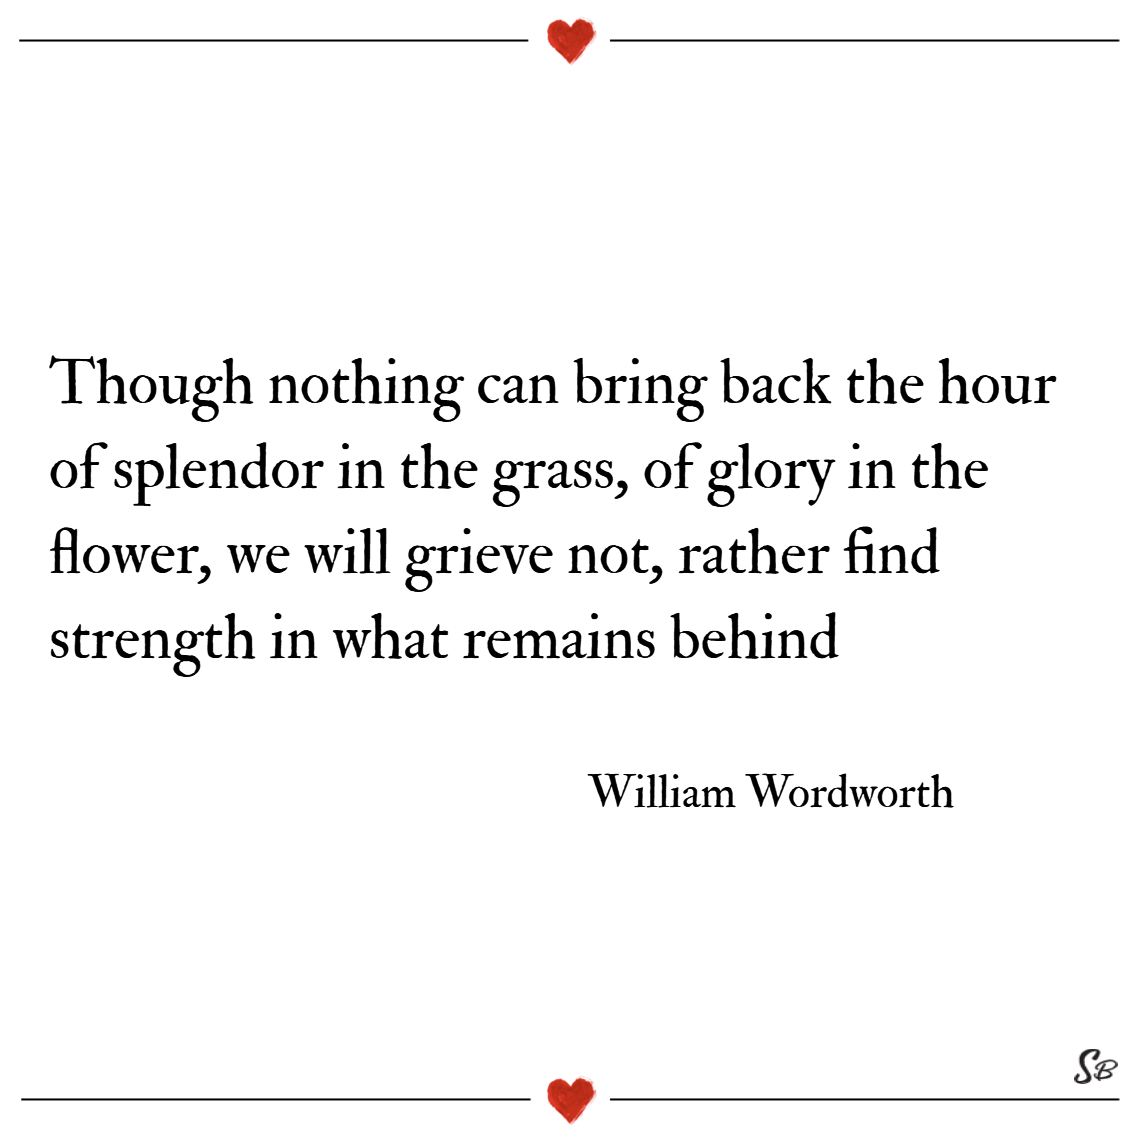 Though nothing can bring back the hour of splendor in the grass, of glory in the flower, we will grieve not, rather find strength in what remains behind. – william wordsworth